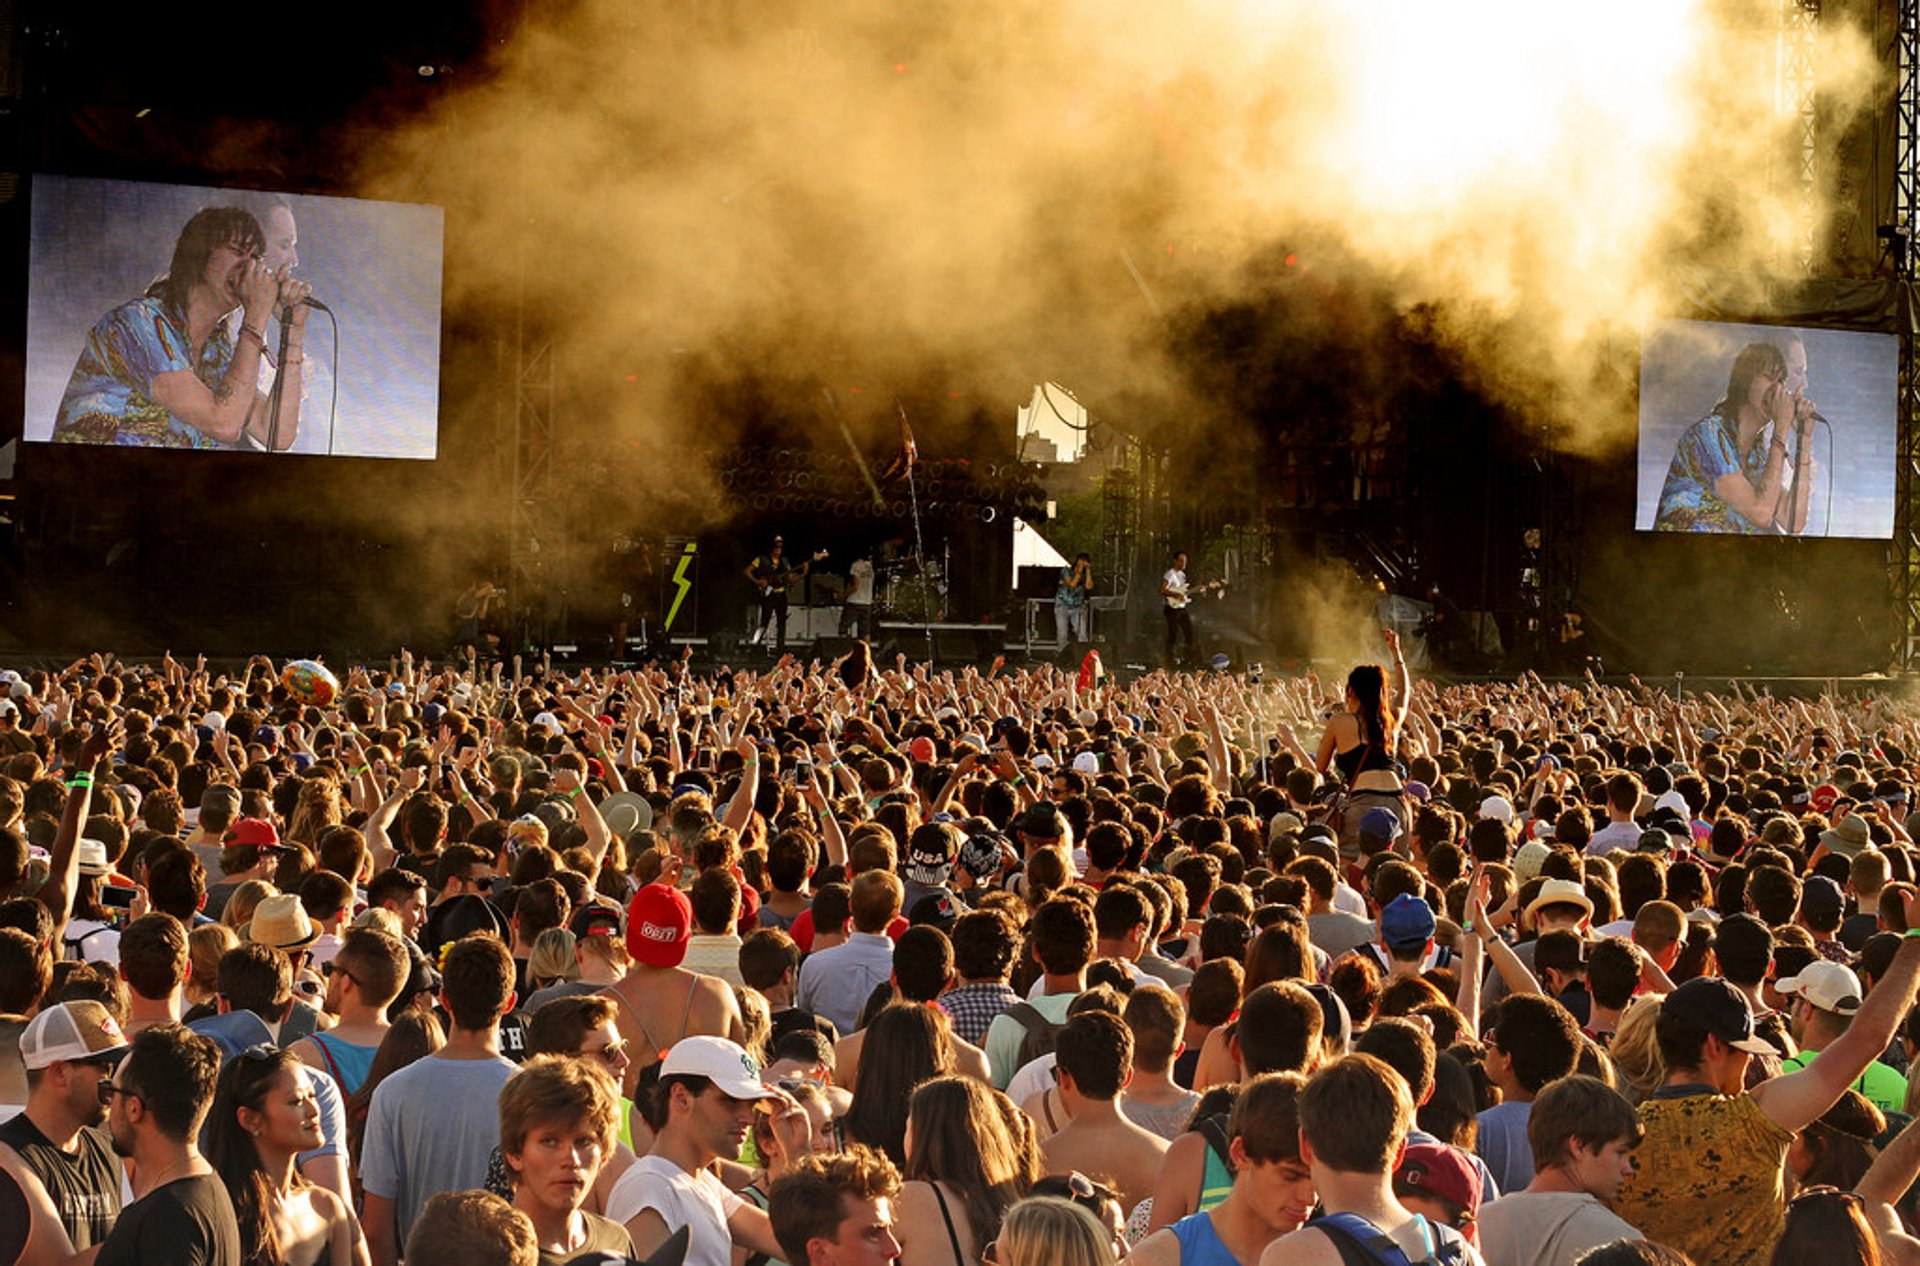 Governors Ball Music Festival in New York - Best Season 2020